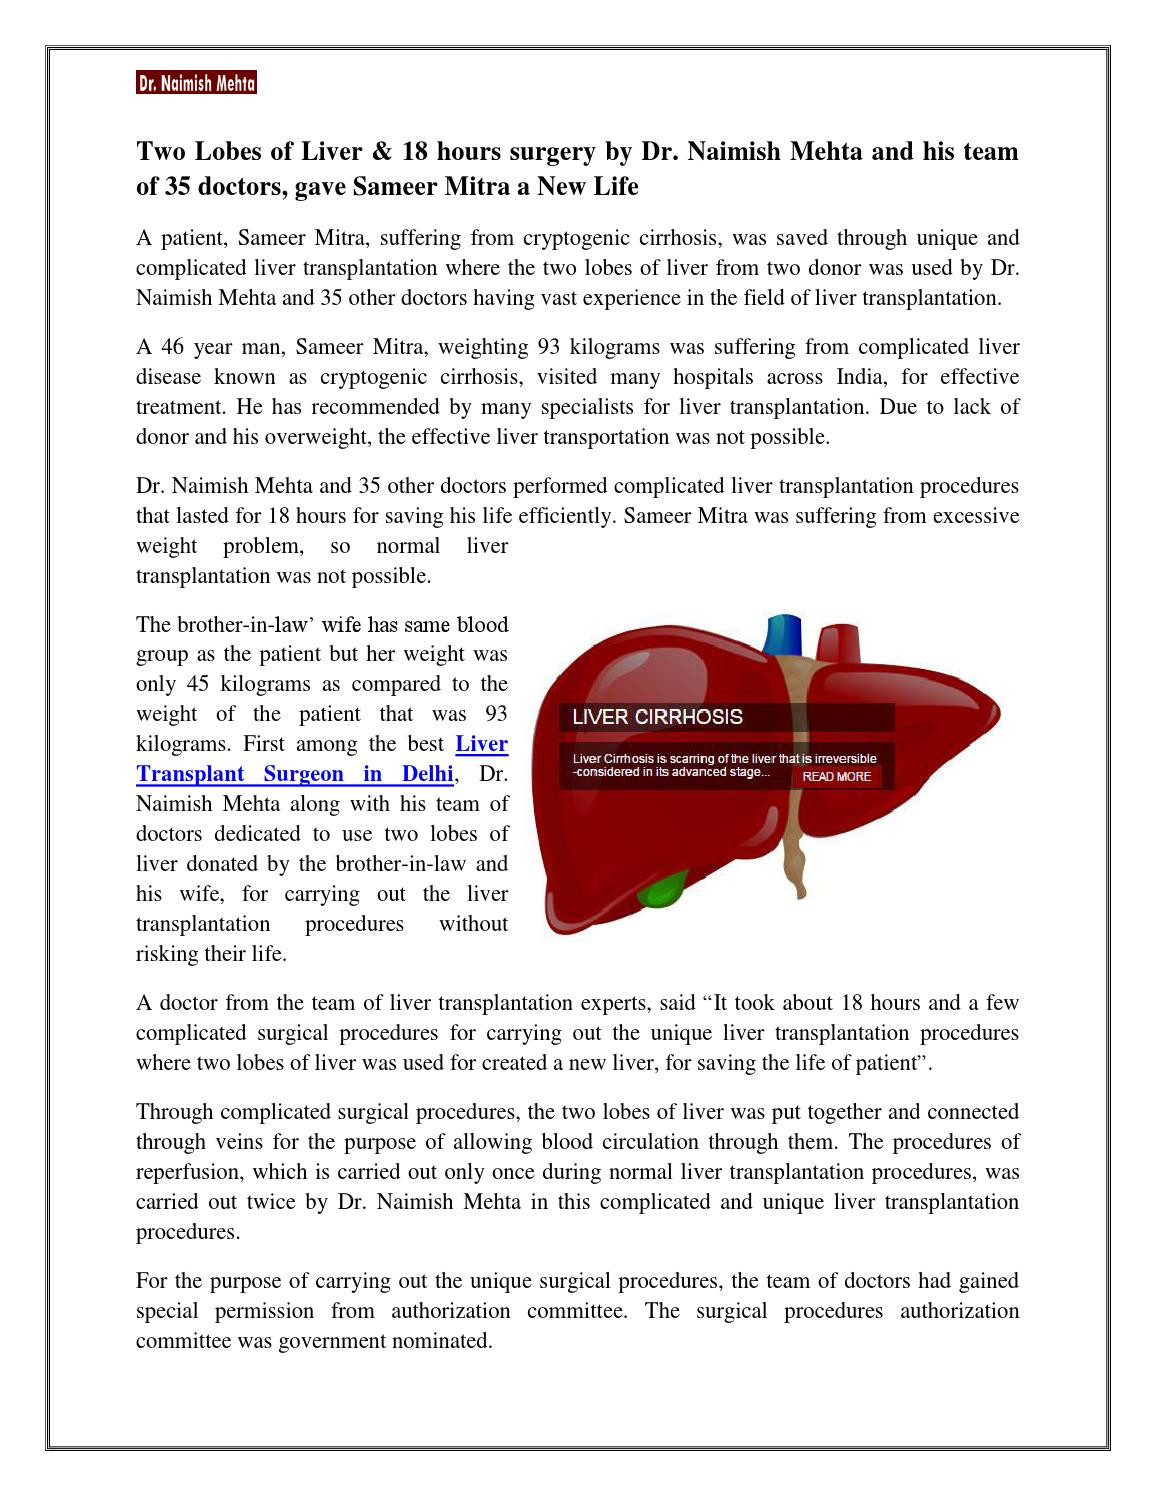 Two Lobes Of Liver 18 Hours Surgery By Dr Naimish Mehta And His